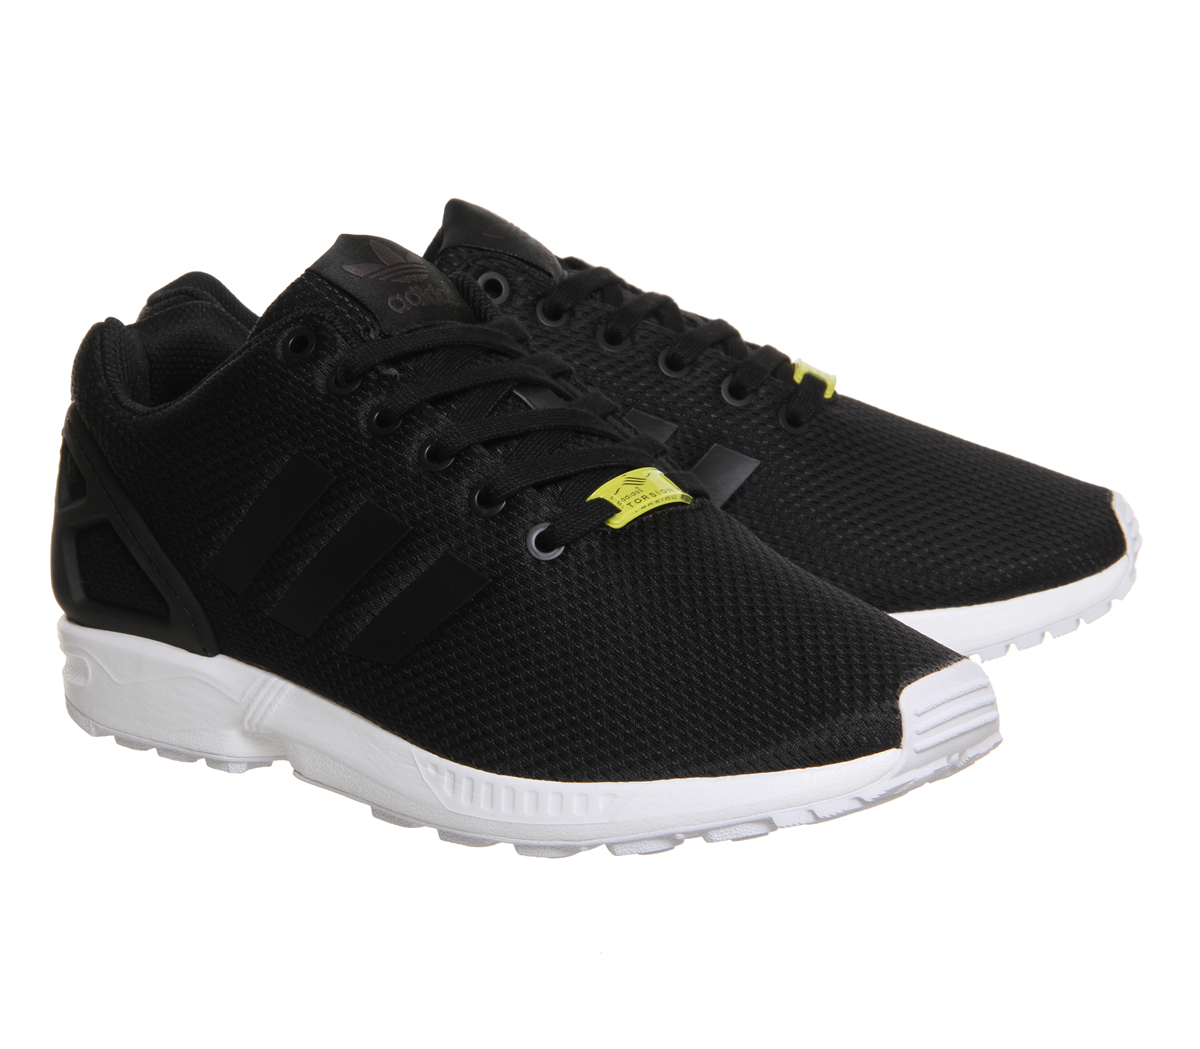 46abf32fee18 Mens-Adidas-Zx-Flux-BLACK-WHITE-Trainers-Shoes thumbnail